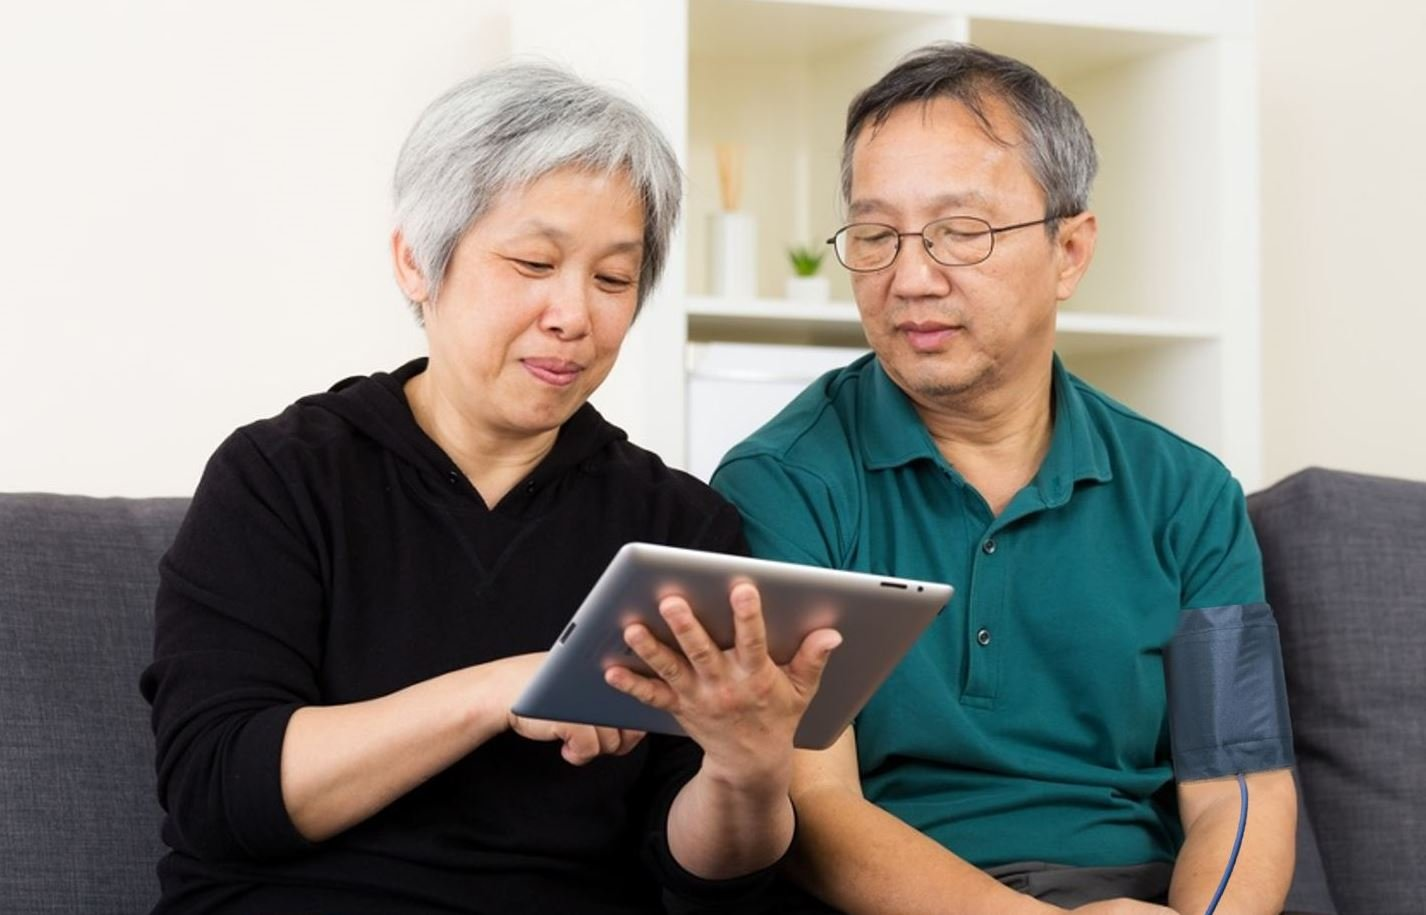 Remote Patient Monitoring Expands the Abilities of Home Health Agencies